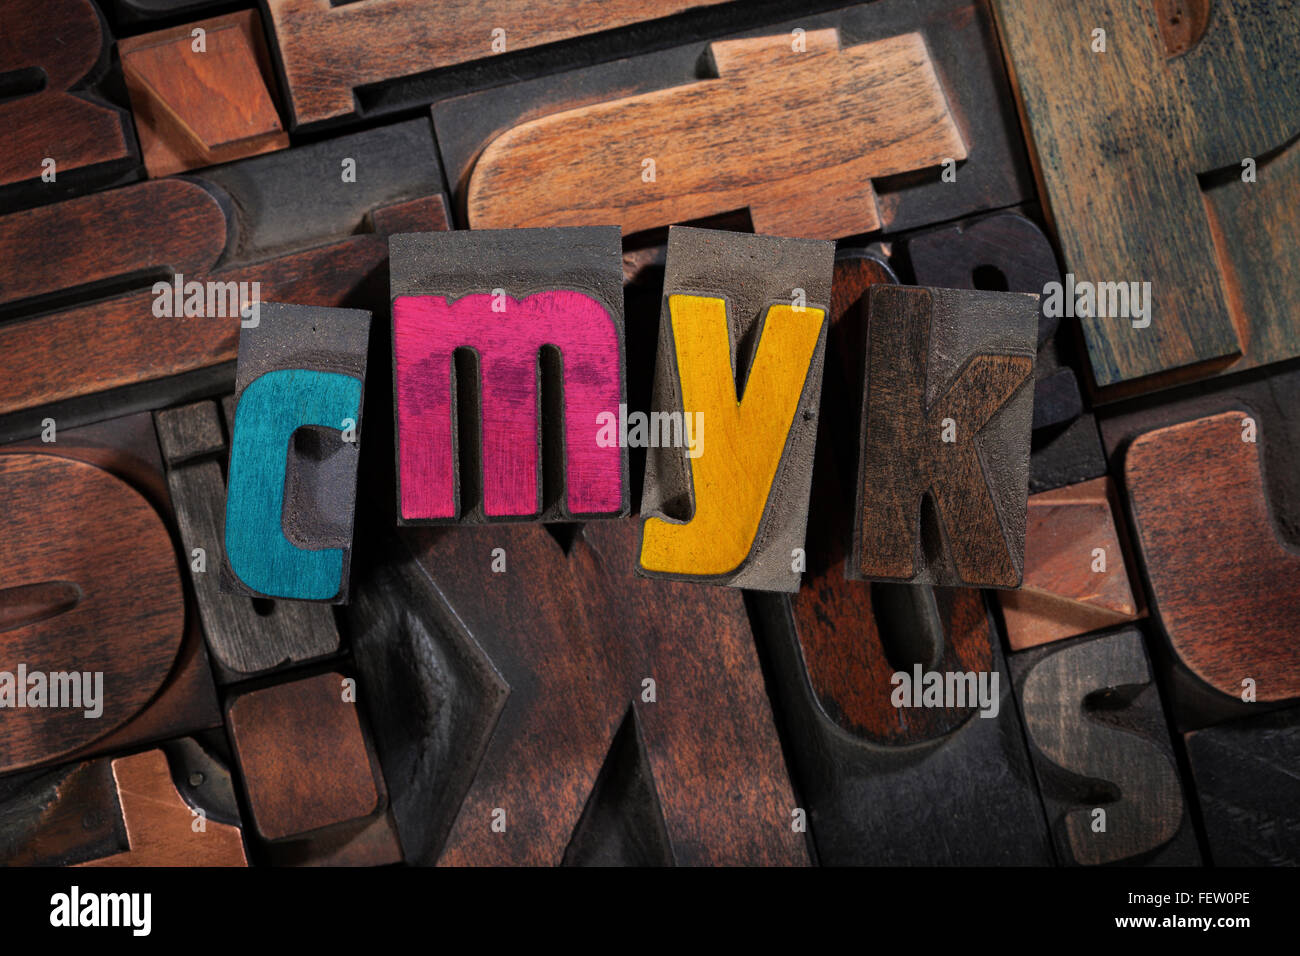 CMYK printing concept - vintage letterpress printing blocks with process colors on random letters background, top - Stock Image